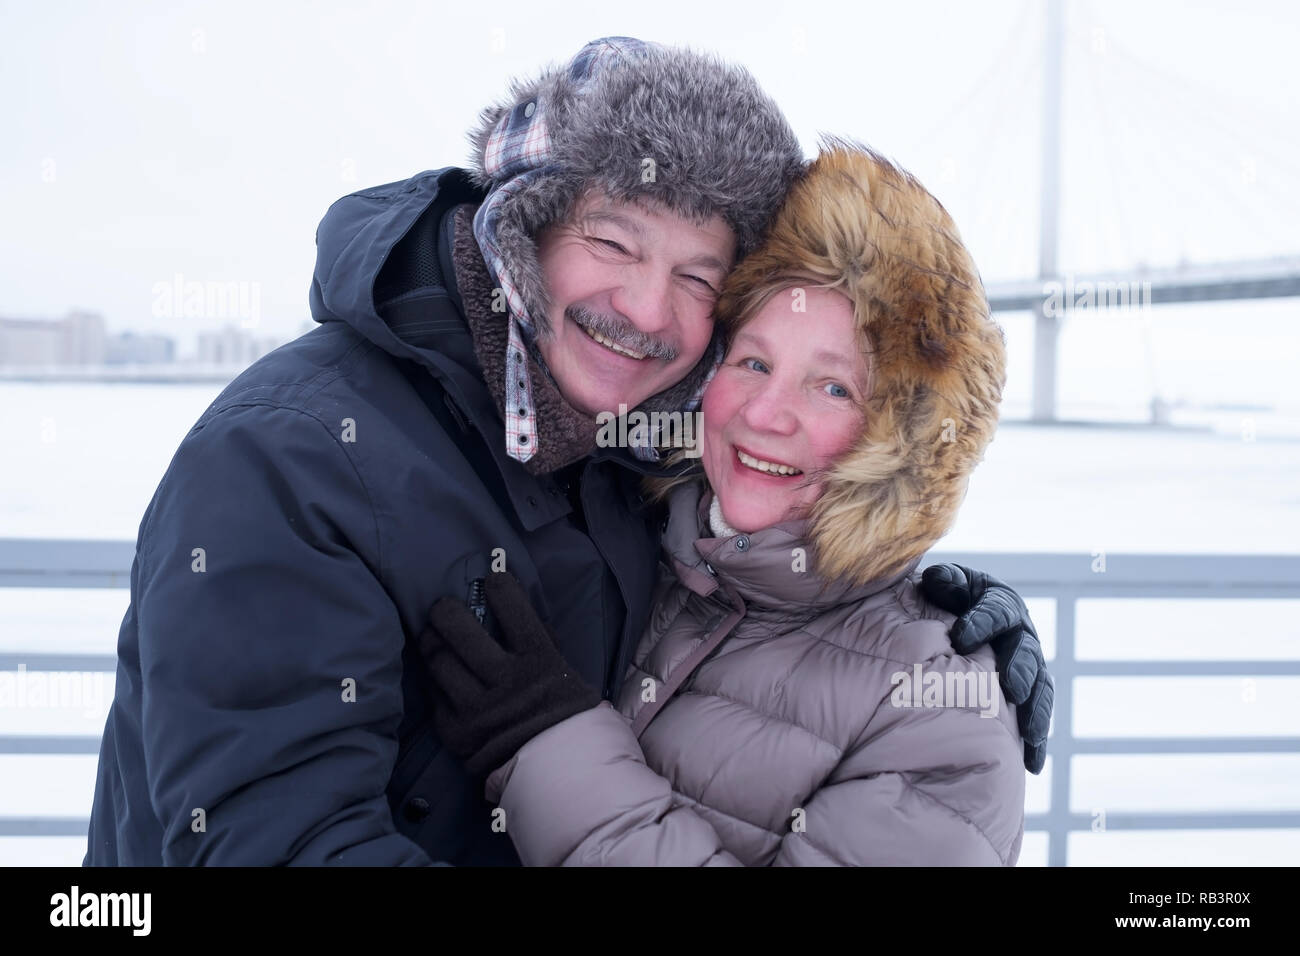 Portrait Of Elderly Couple Having Fun Outdoors In Winter Smiling